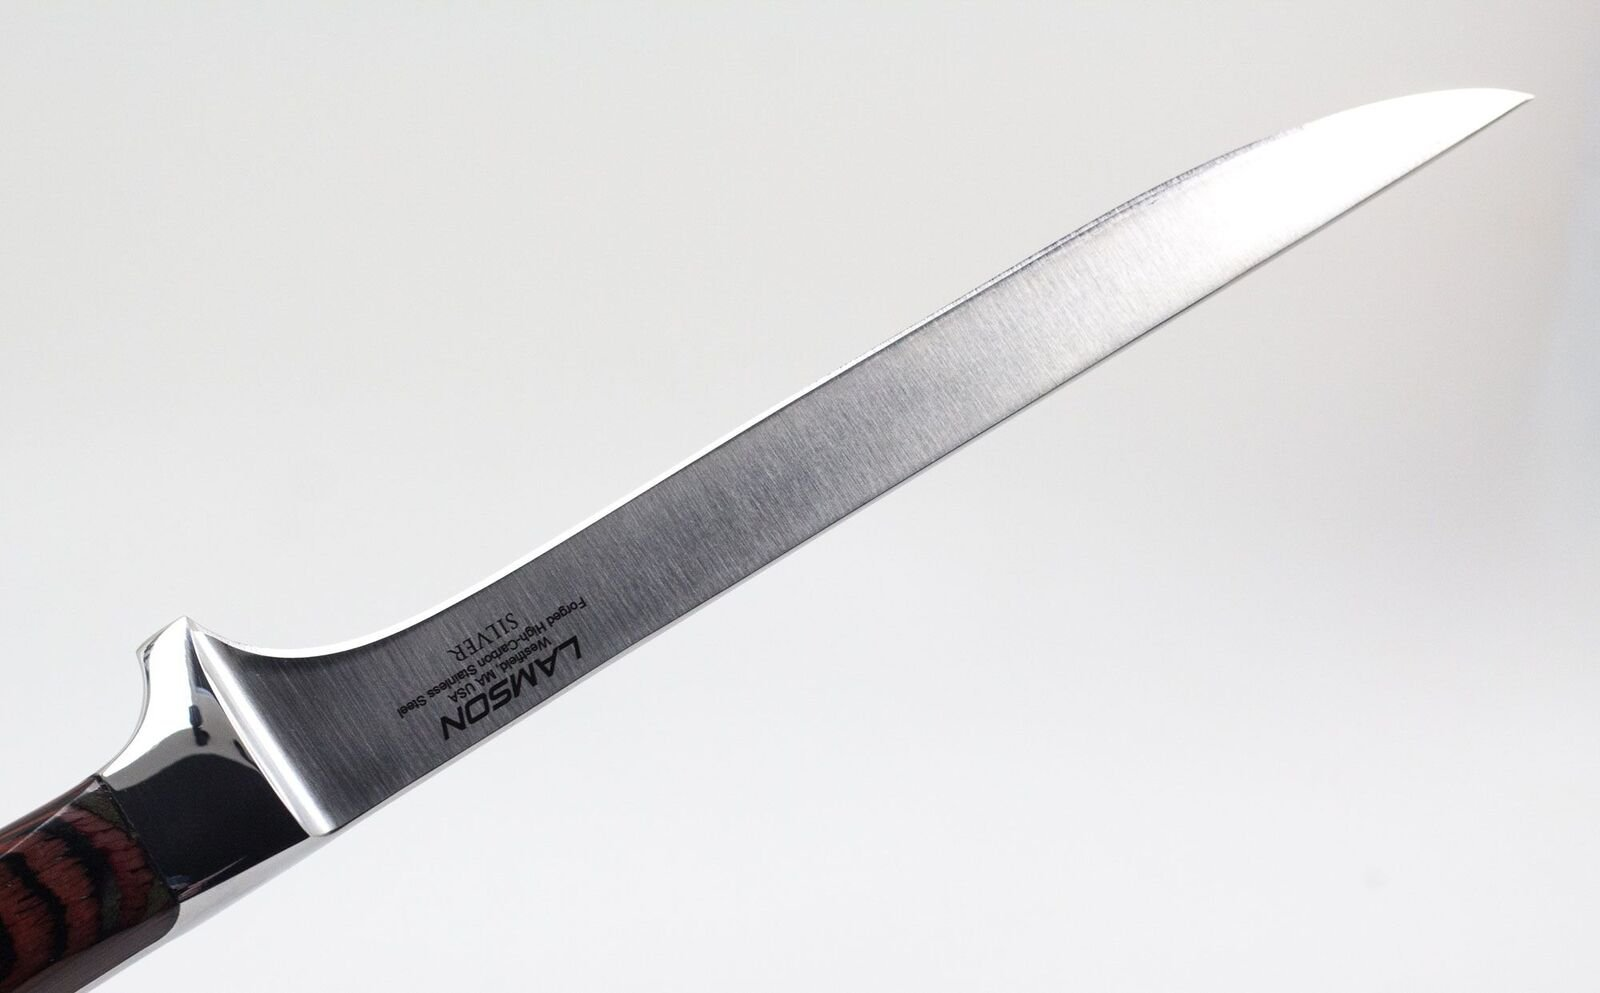 Lamson Silver Forged 6-Inch Fillet/Boning Knife by Lamson (Image #3)